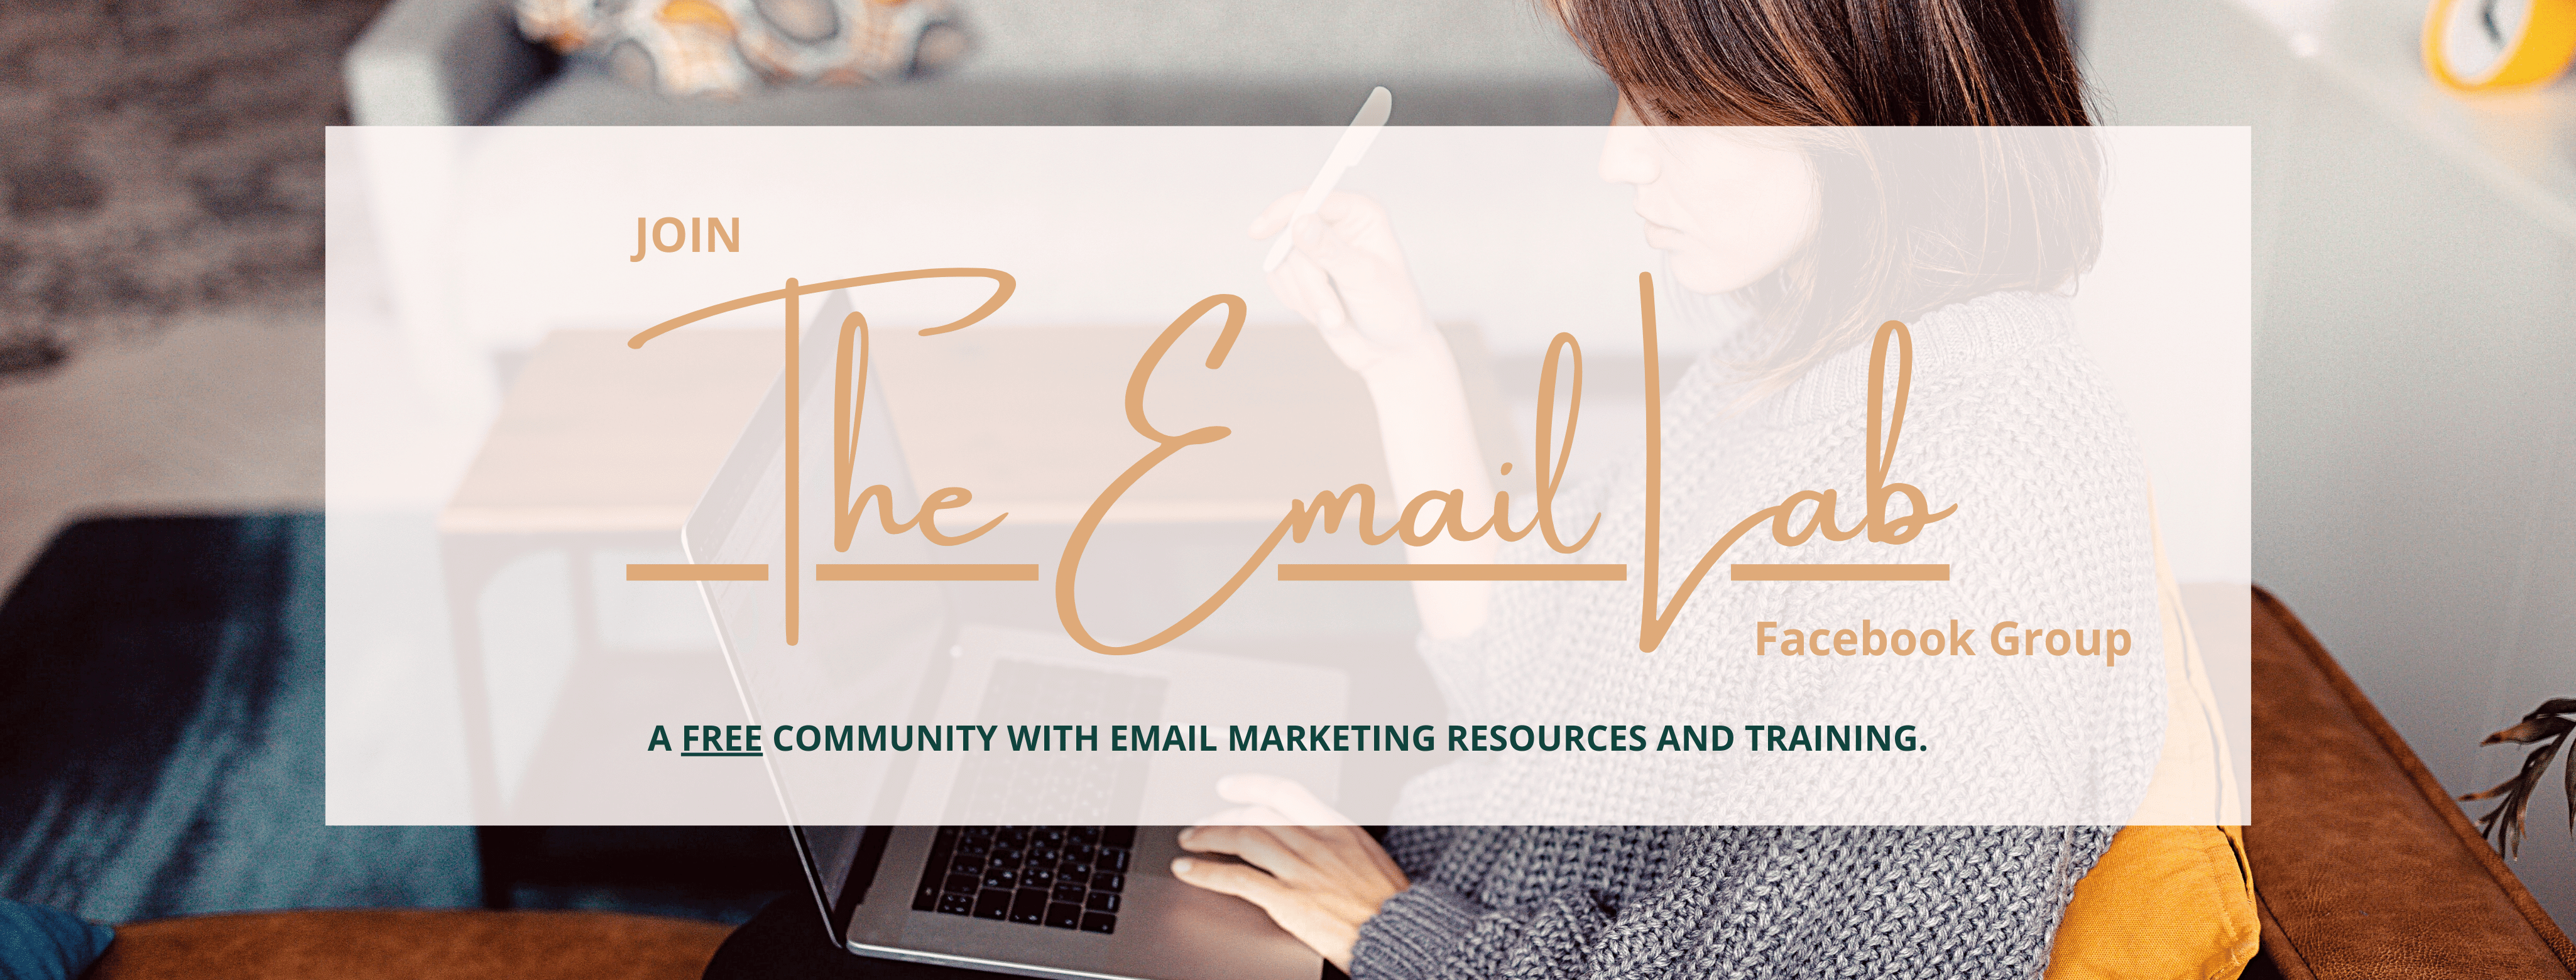 Join The Email Lab Facebook group